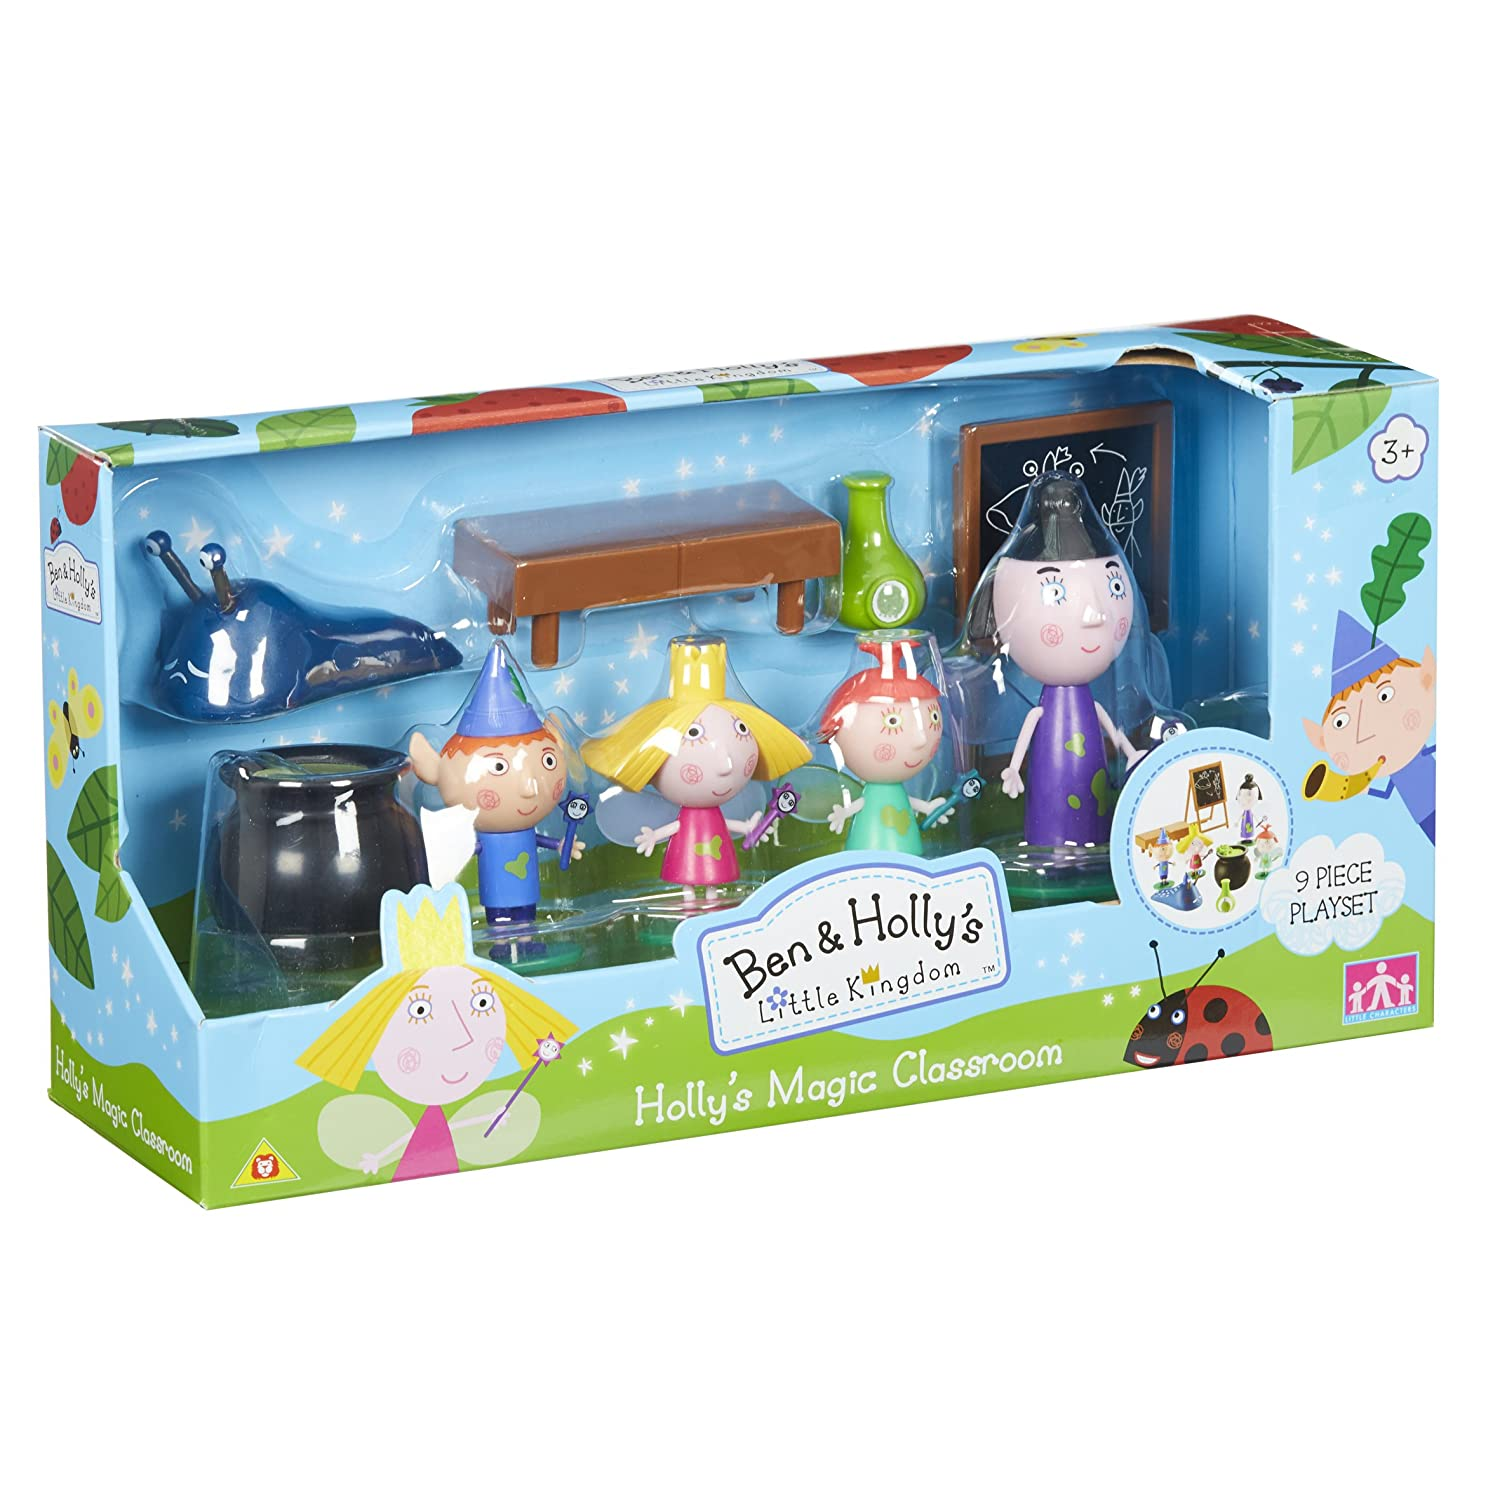 Ben & Holly's Little Kingdom Magic Class Set (Dispatched From UK) 05734